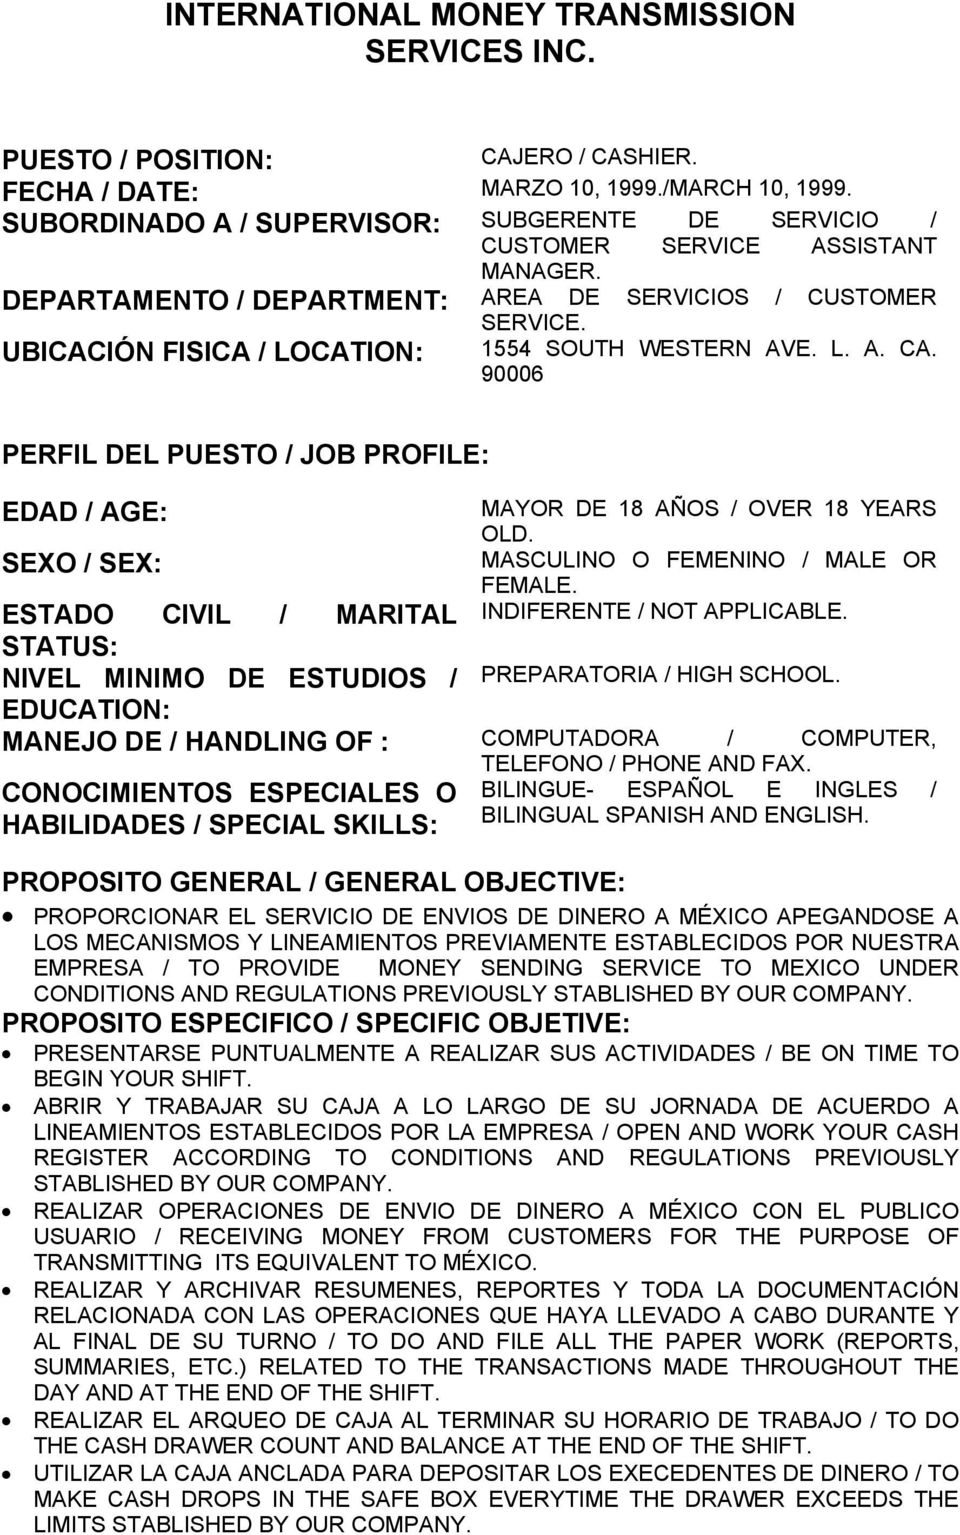 UBICACIÓN FISICA / LOCATION: 1554 SOUTH WESTERN AVE. L. A. CA. 90006 PERFIL DEL PUESTO / JOB PROFILE: EDAD / AGE: MAYOR DE 18 AÑOS / OVER 18 YEARS OLD.